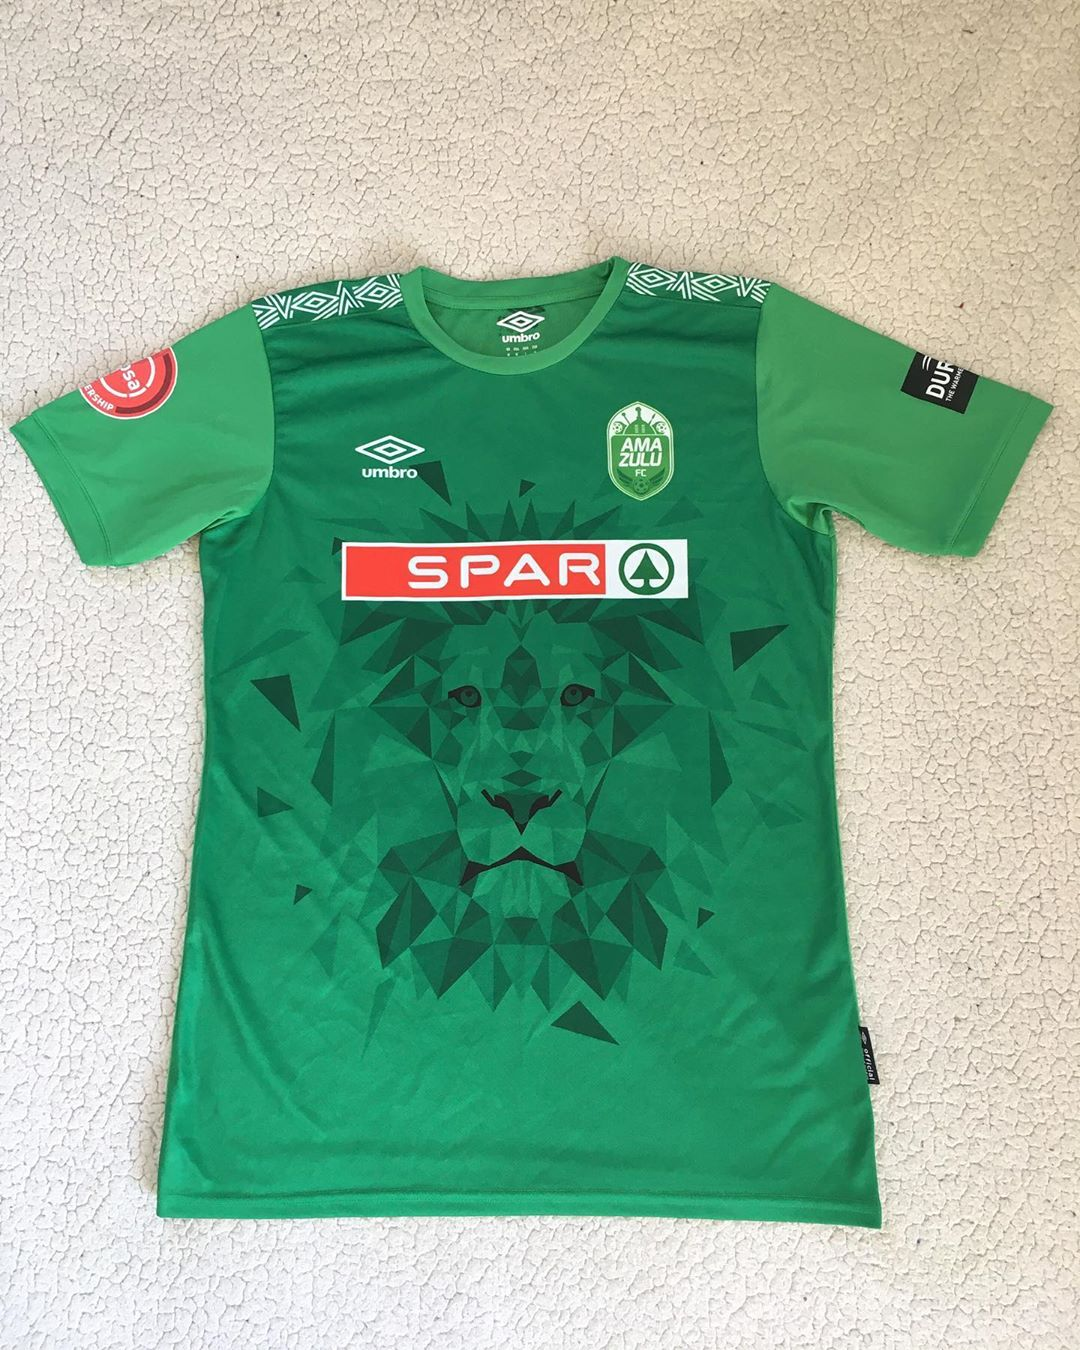 AmaZulu F.C. Home 2019/2020 Football Shirt Manufactured By Umbro. The club plays football in South Africa.